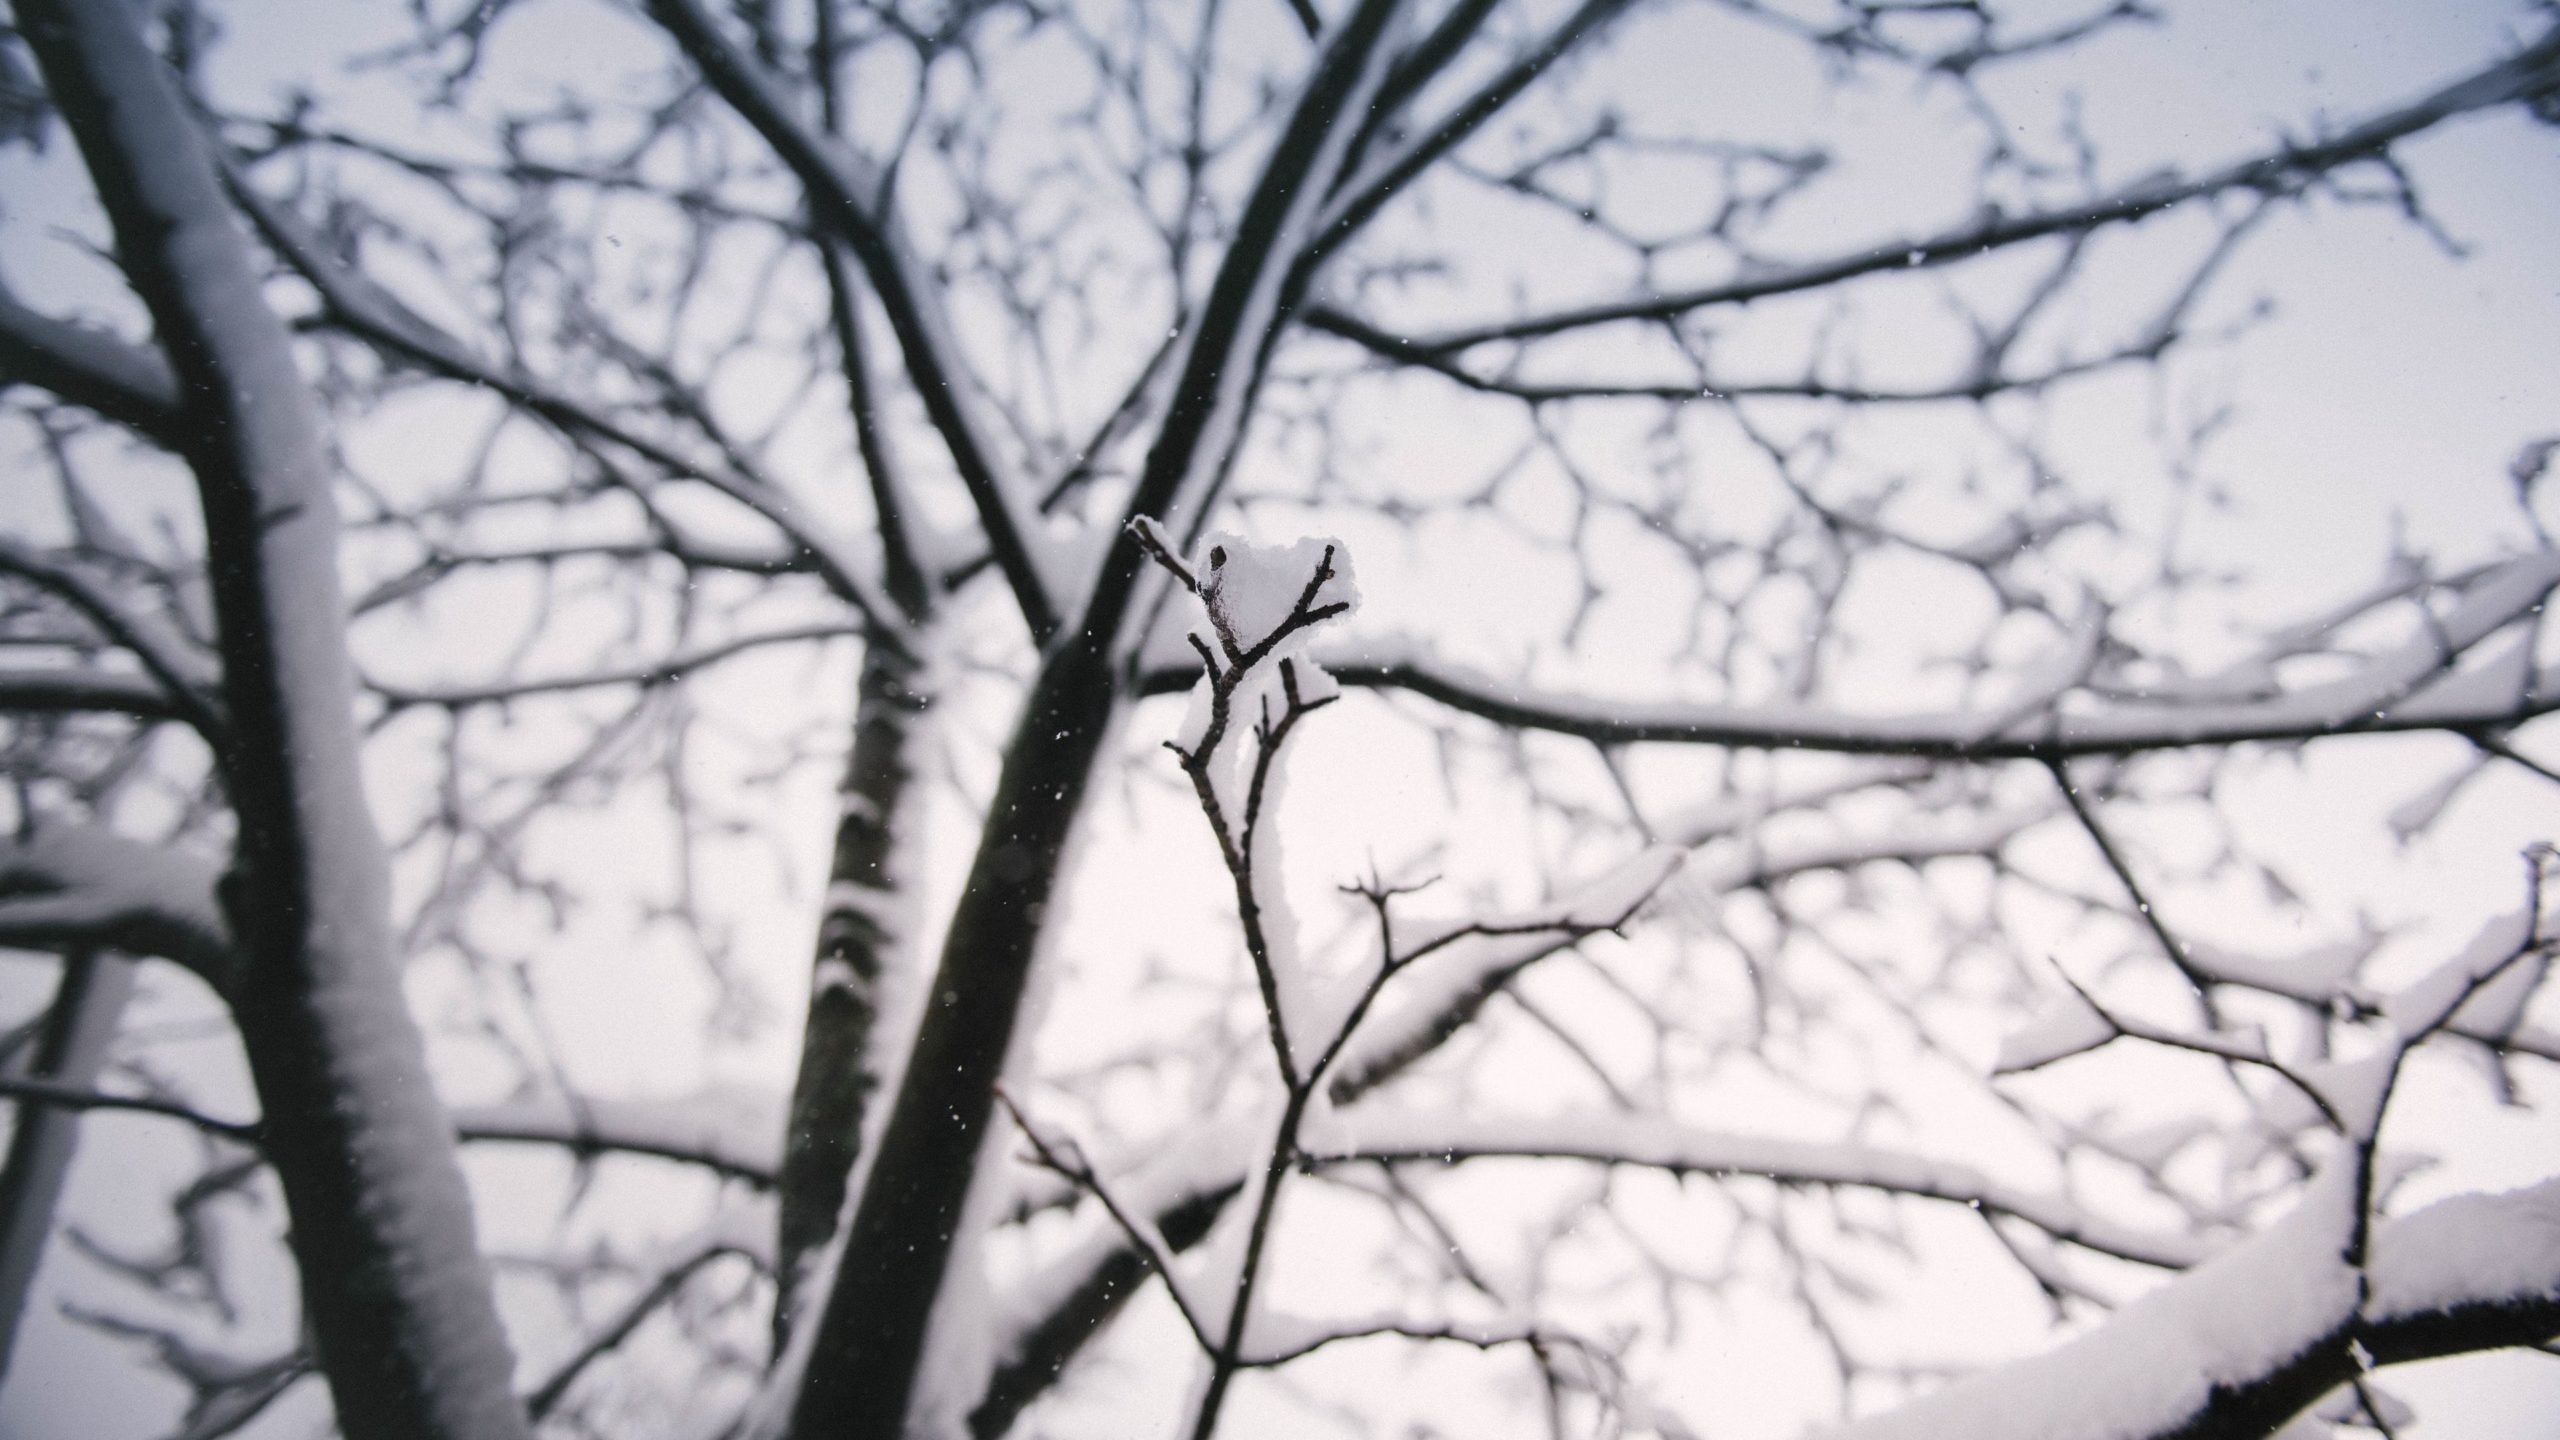 snowing images free